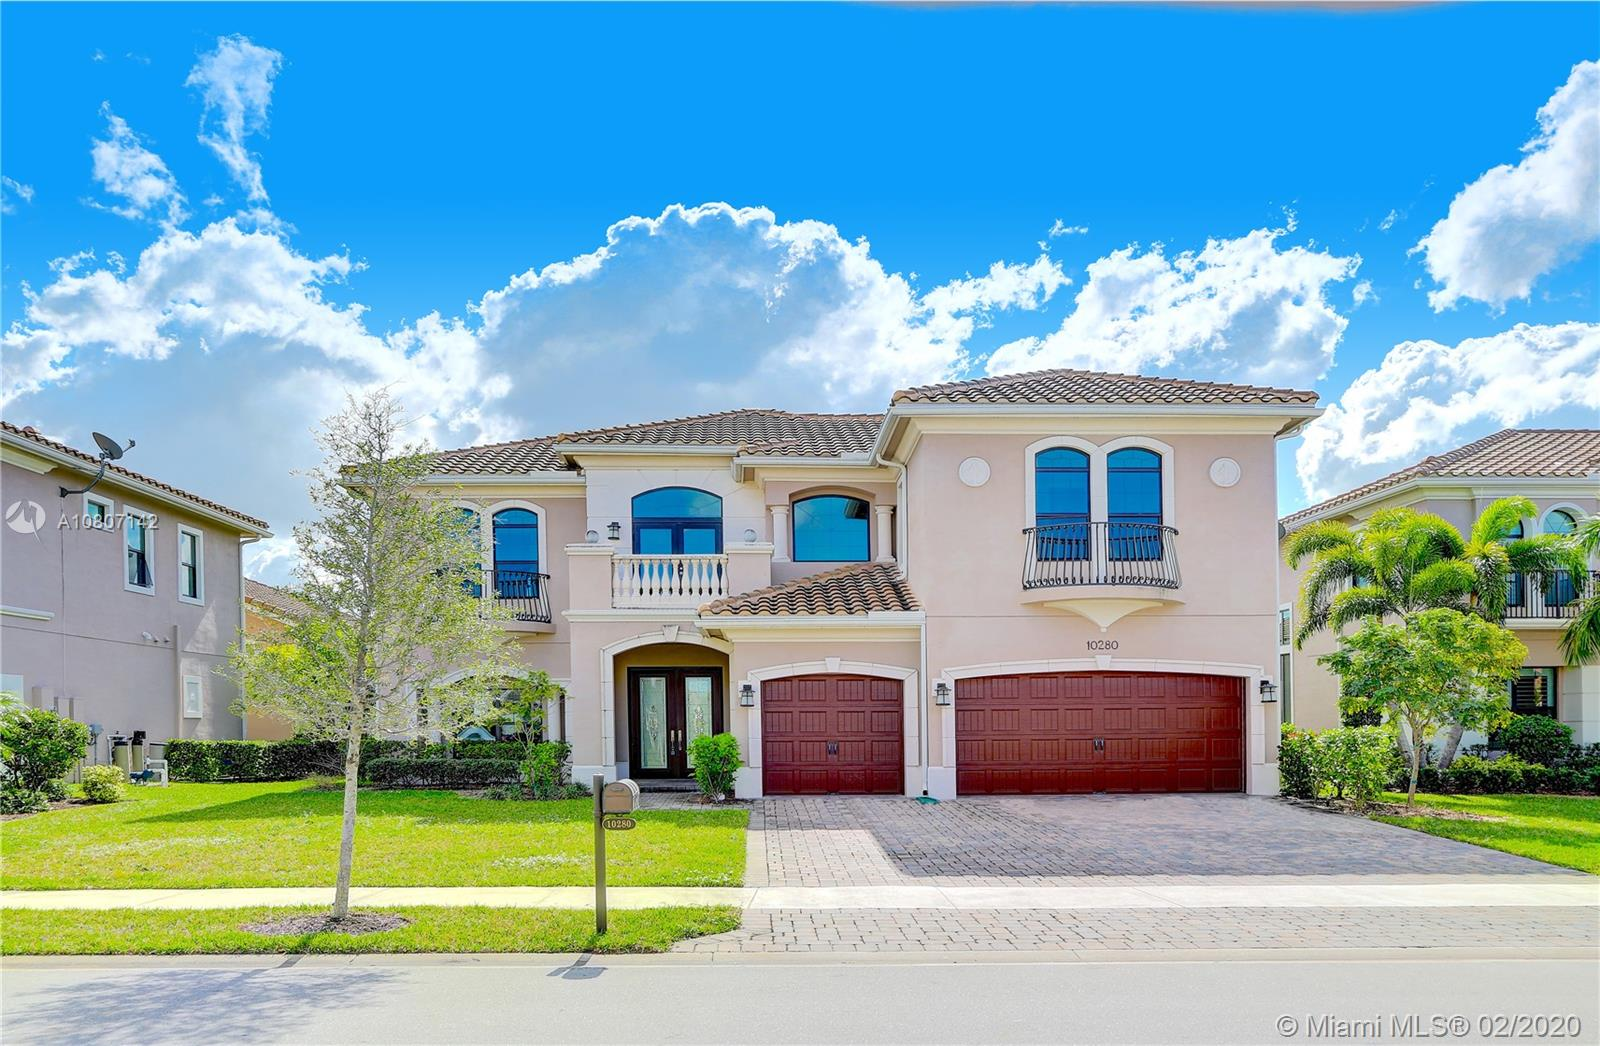 Property for sale at 10280 Sweet Bay Ct, Parkland,  Florida 33076